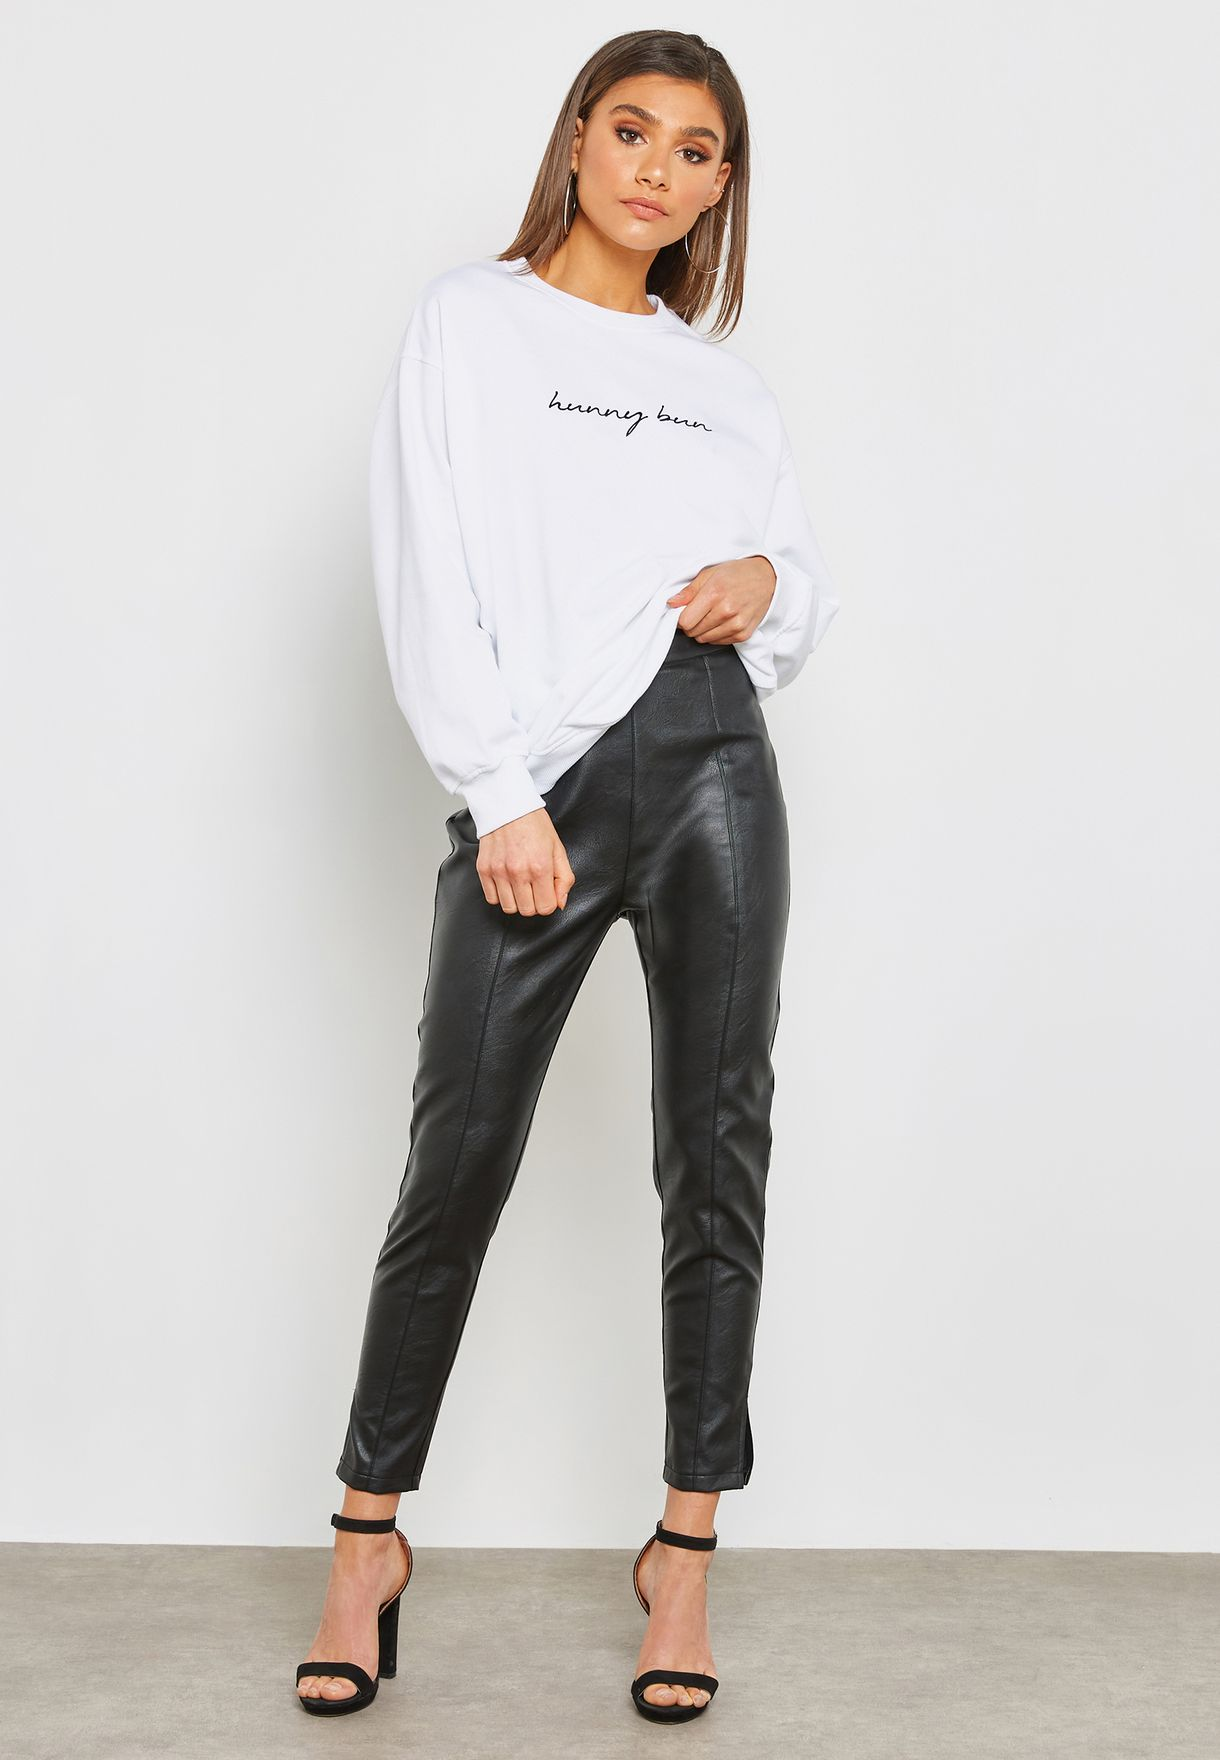 c218108faeb686 Shop Missguided black High Waist Faux Leather Pants R9341163 for ...